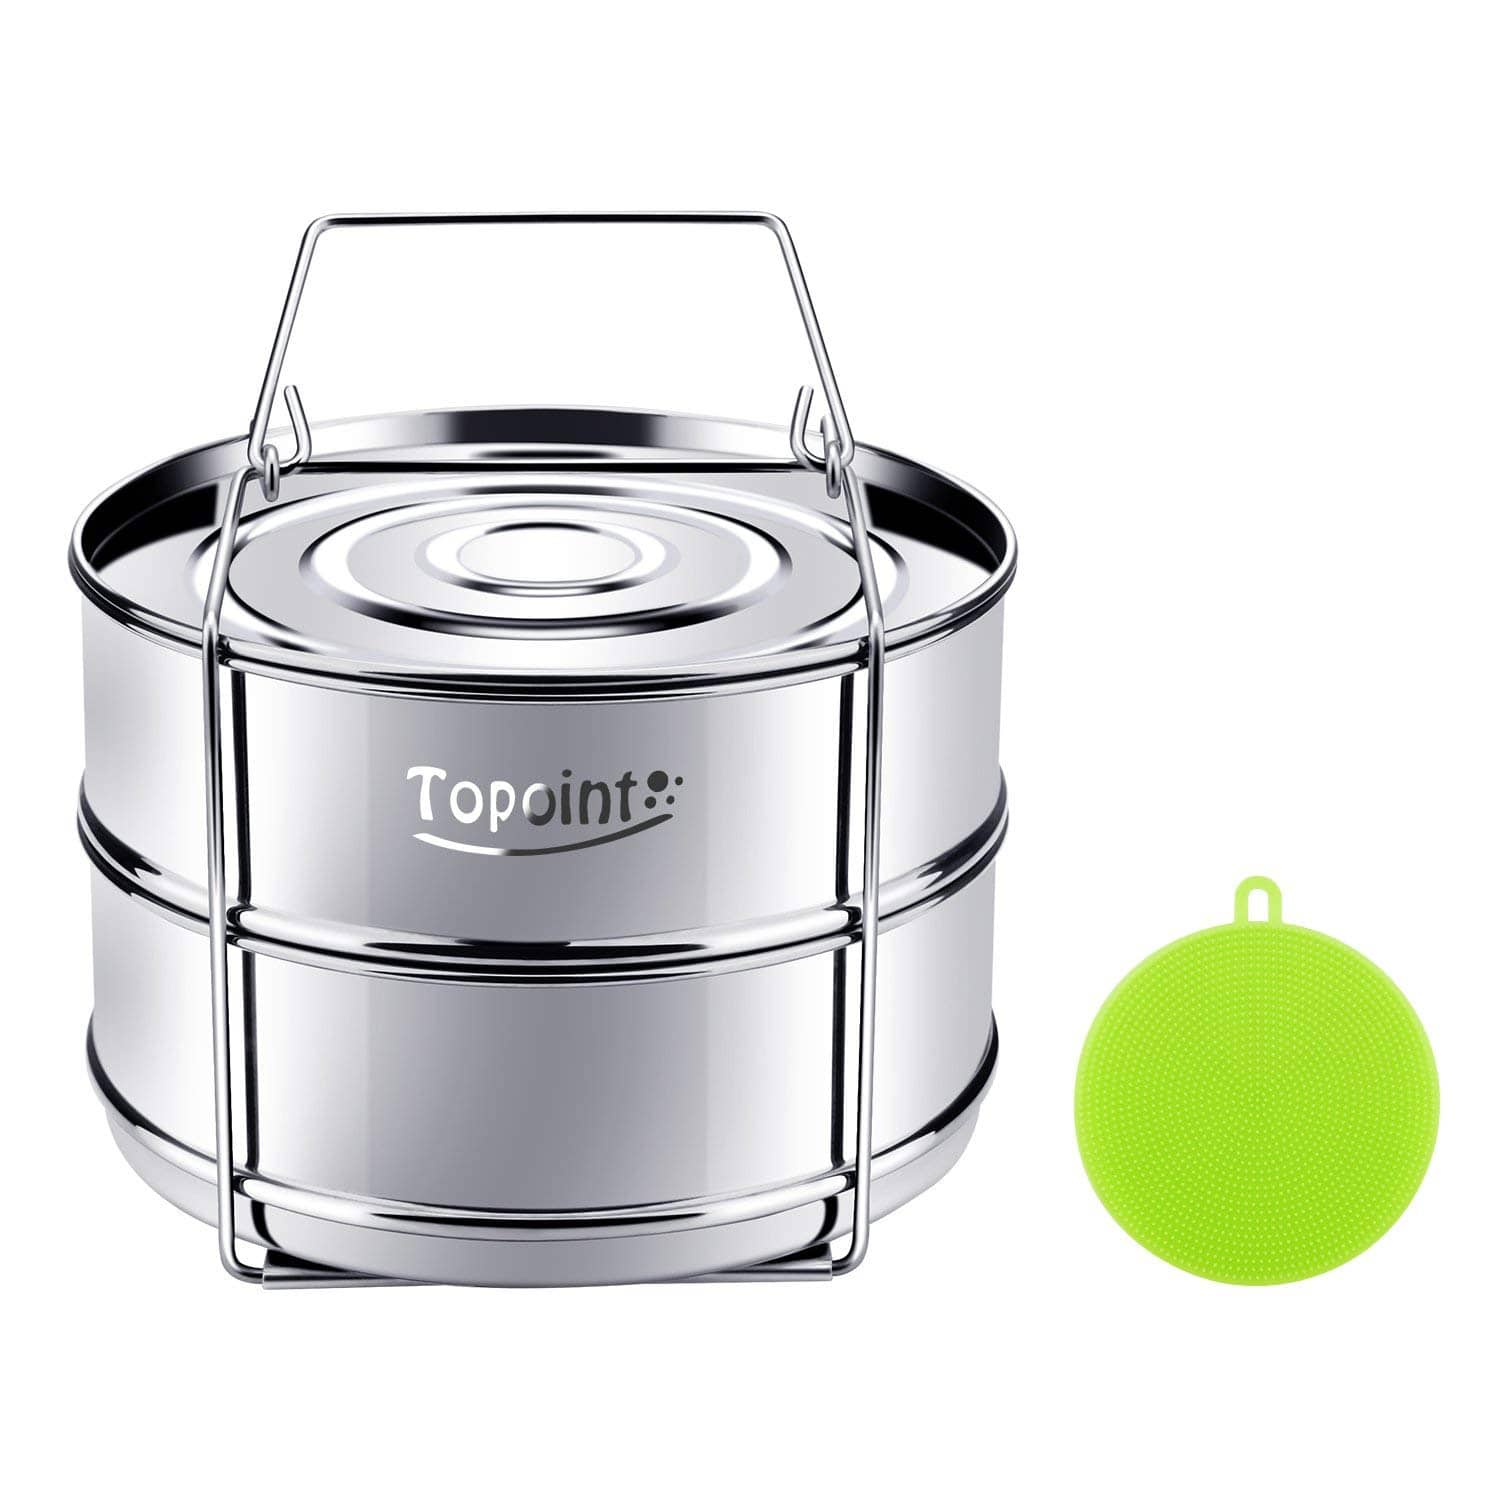 Stackable Pressure Cooker Insert Pan,Instant Pot Accessories for 6, 8 Qt Cookware Pans Made with Food Grade 304 Stainless Steel with Silicone Scrubber -- $9.99 AC